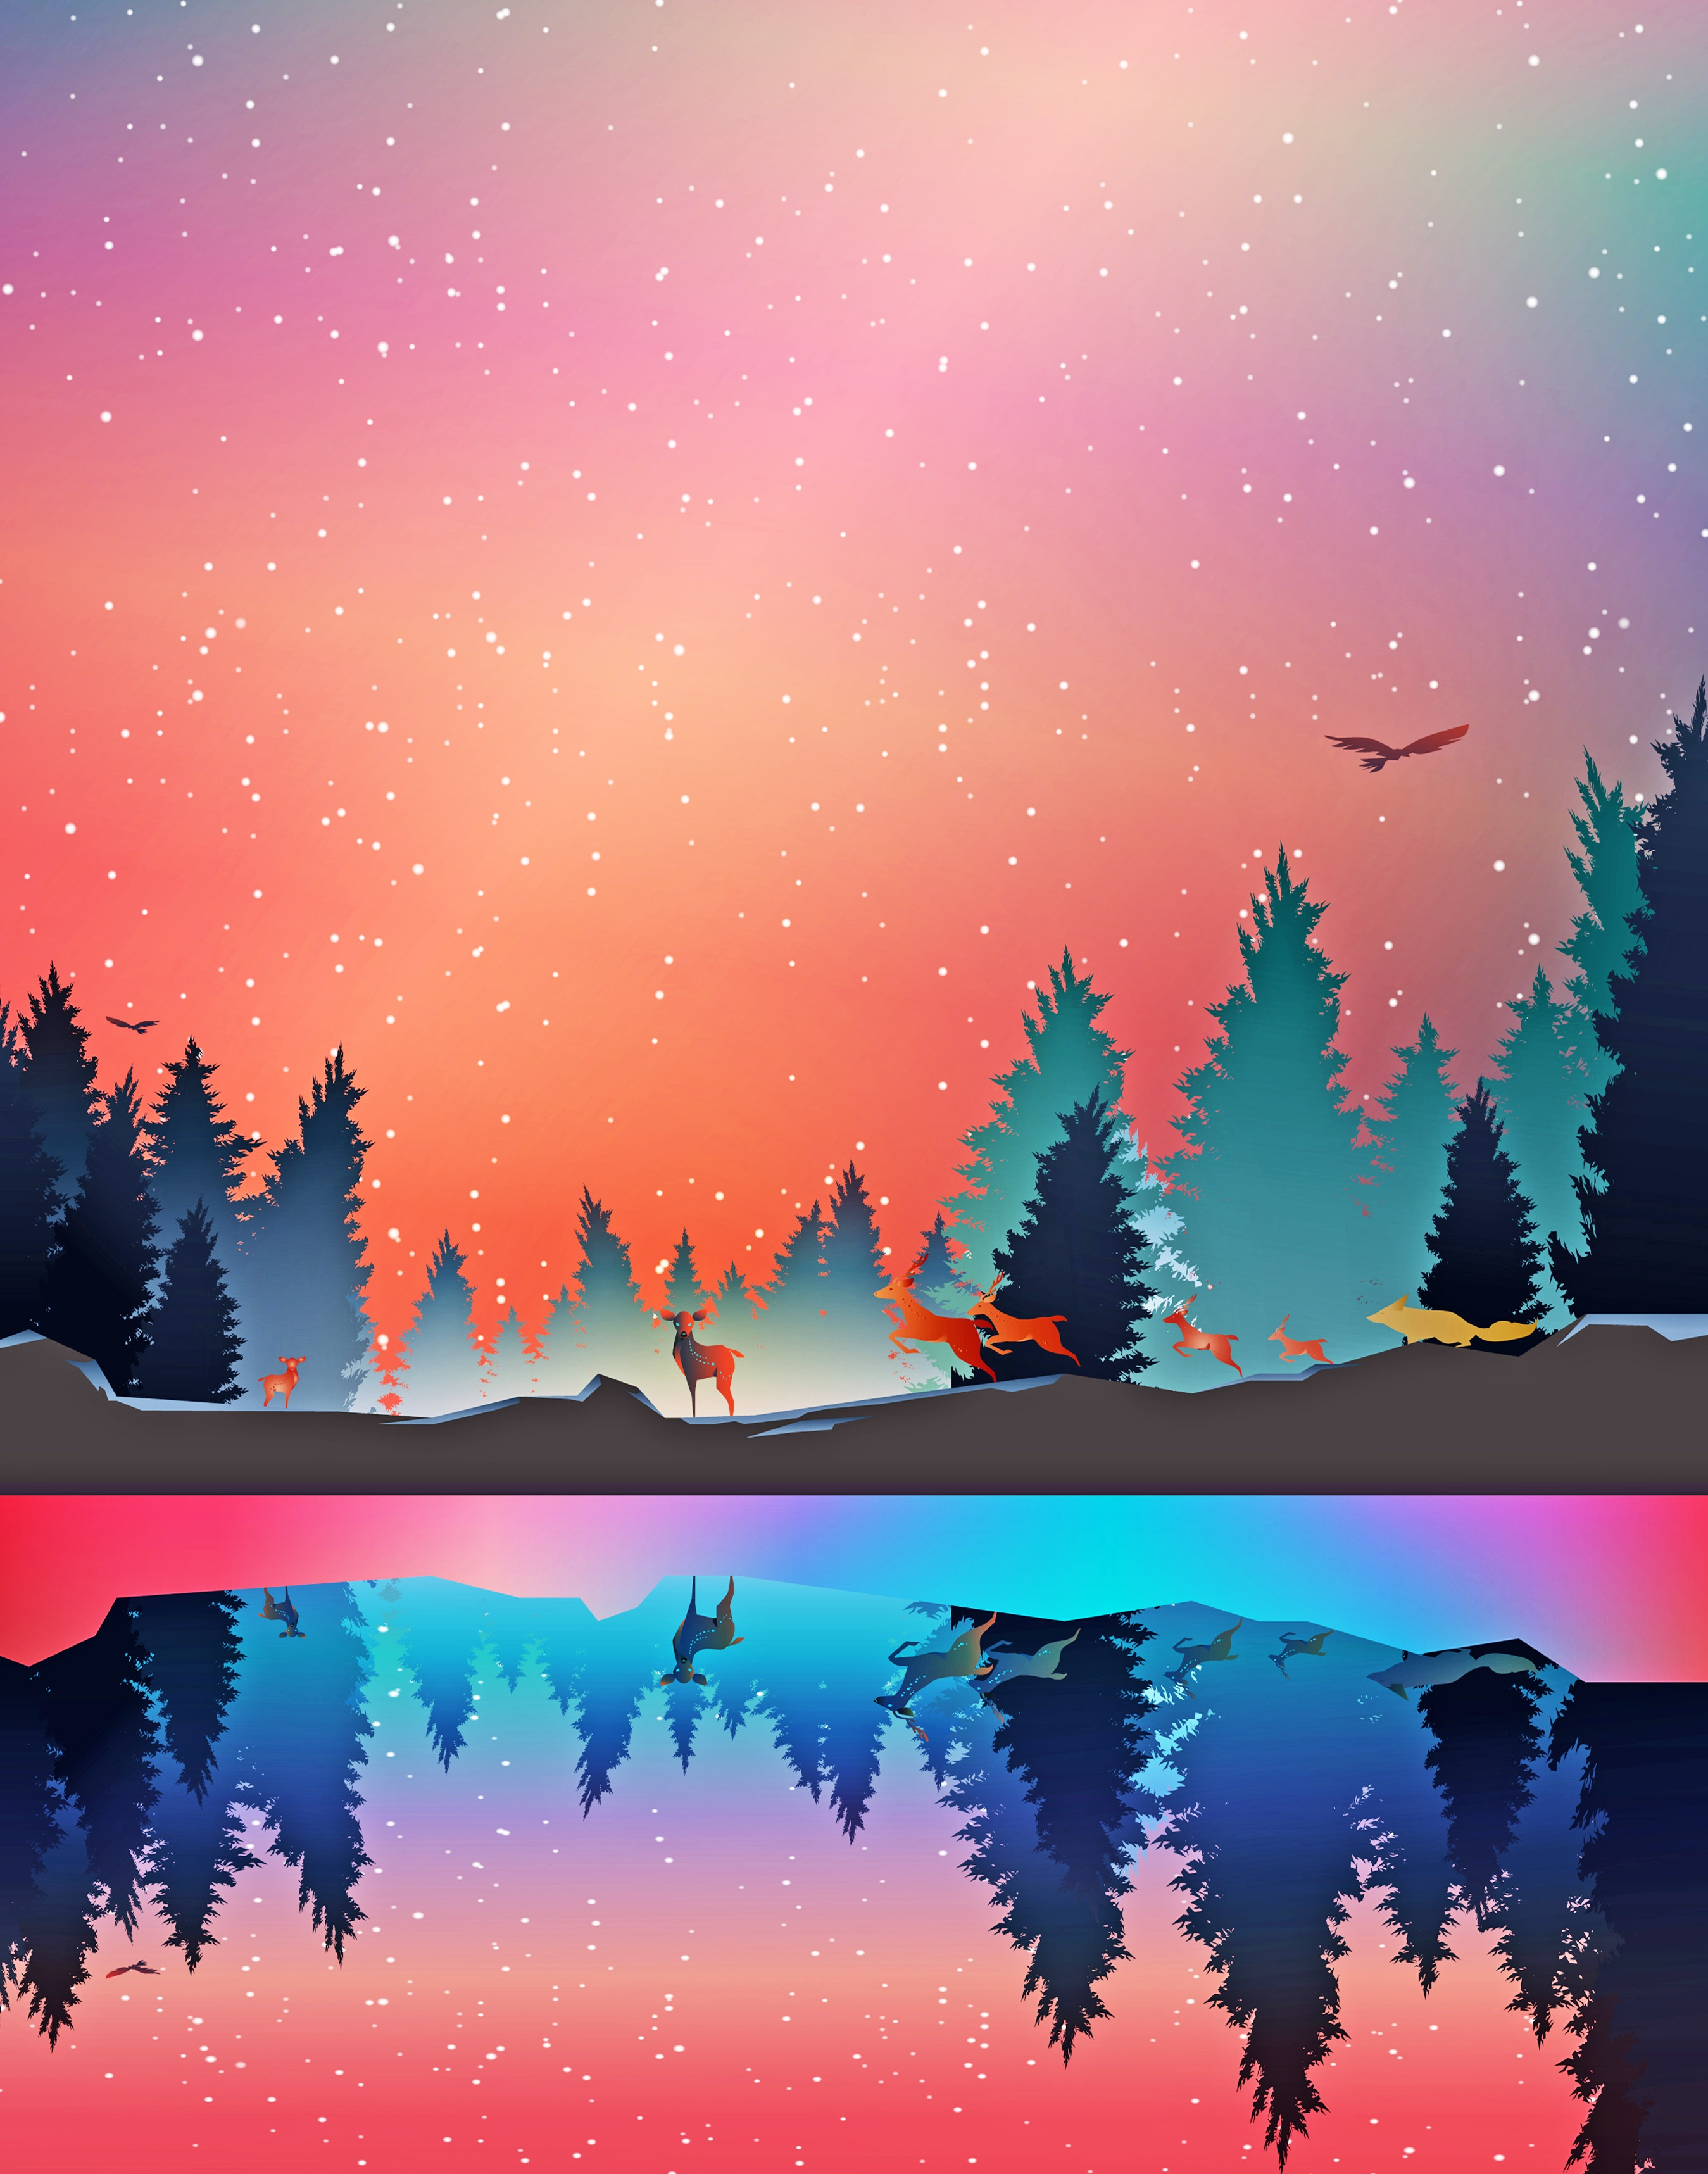 125575 download wallpaper Winter, Art, Vector, Forest, Reflection, Animals screensavers and pictures for free